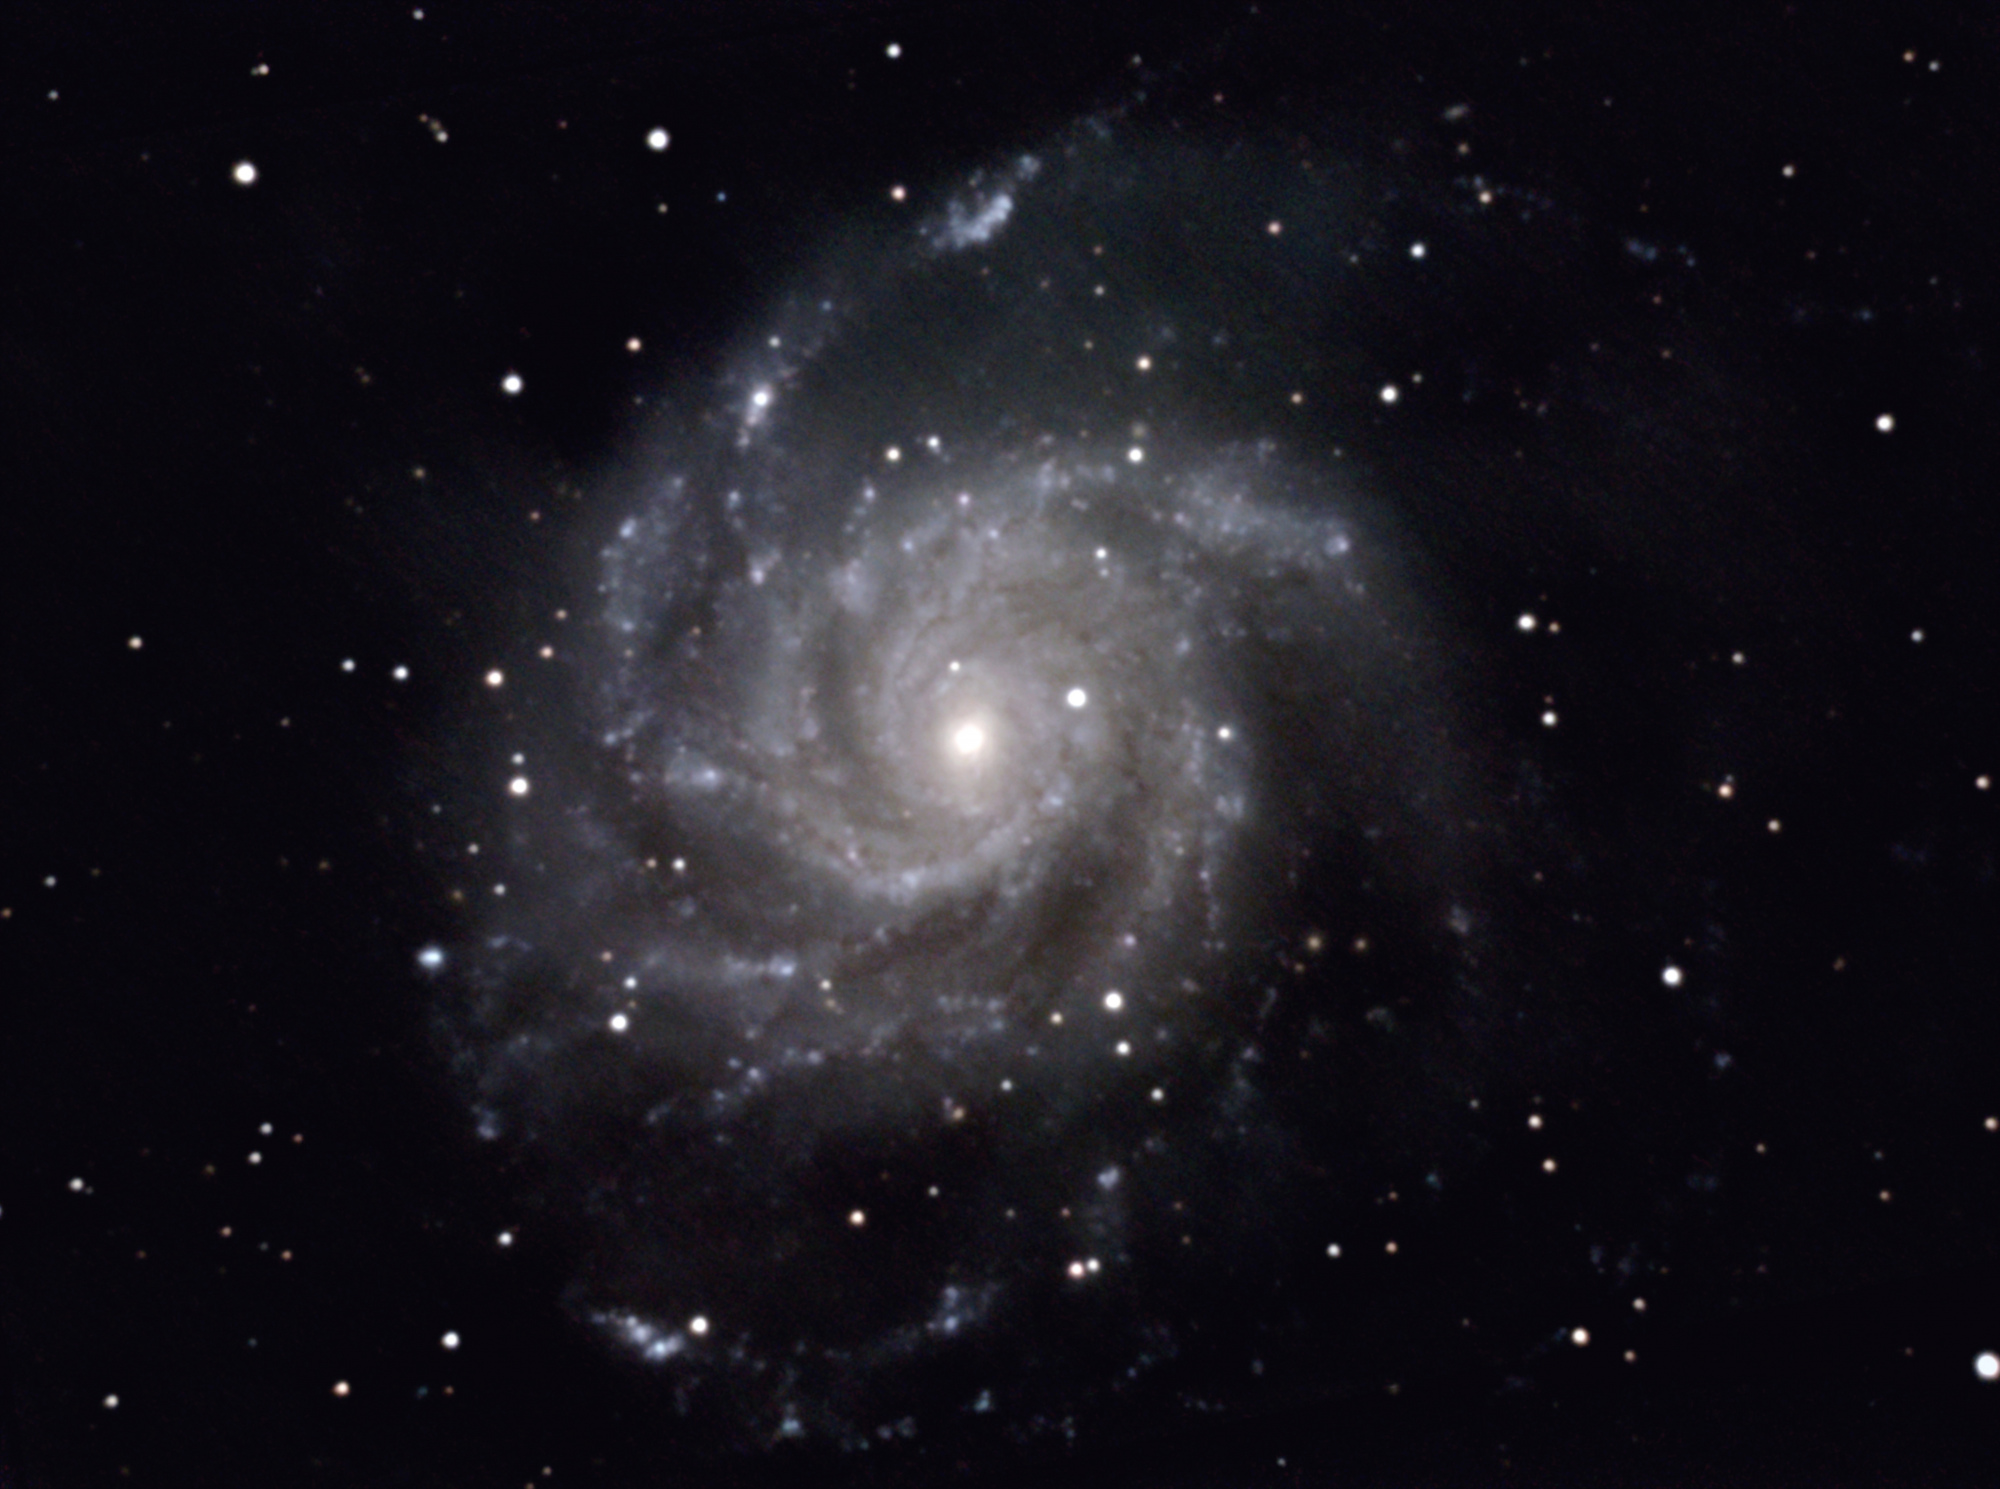 M101_190414-subtract_2.thumb.jpg.66ae9e0cd9909294520b44ec574f07fd.jpg